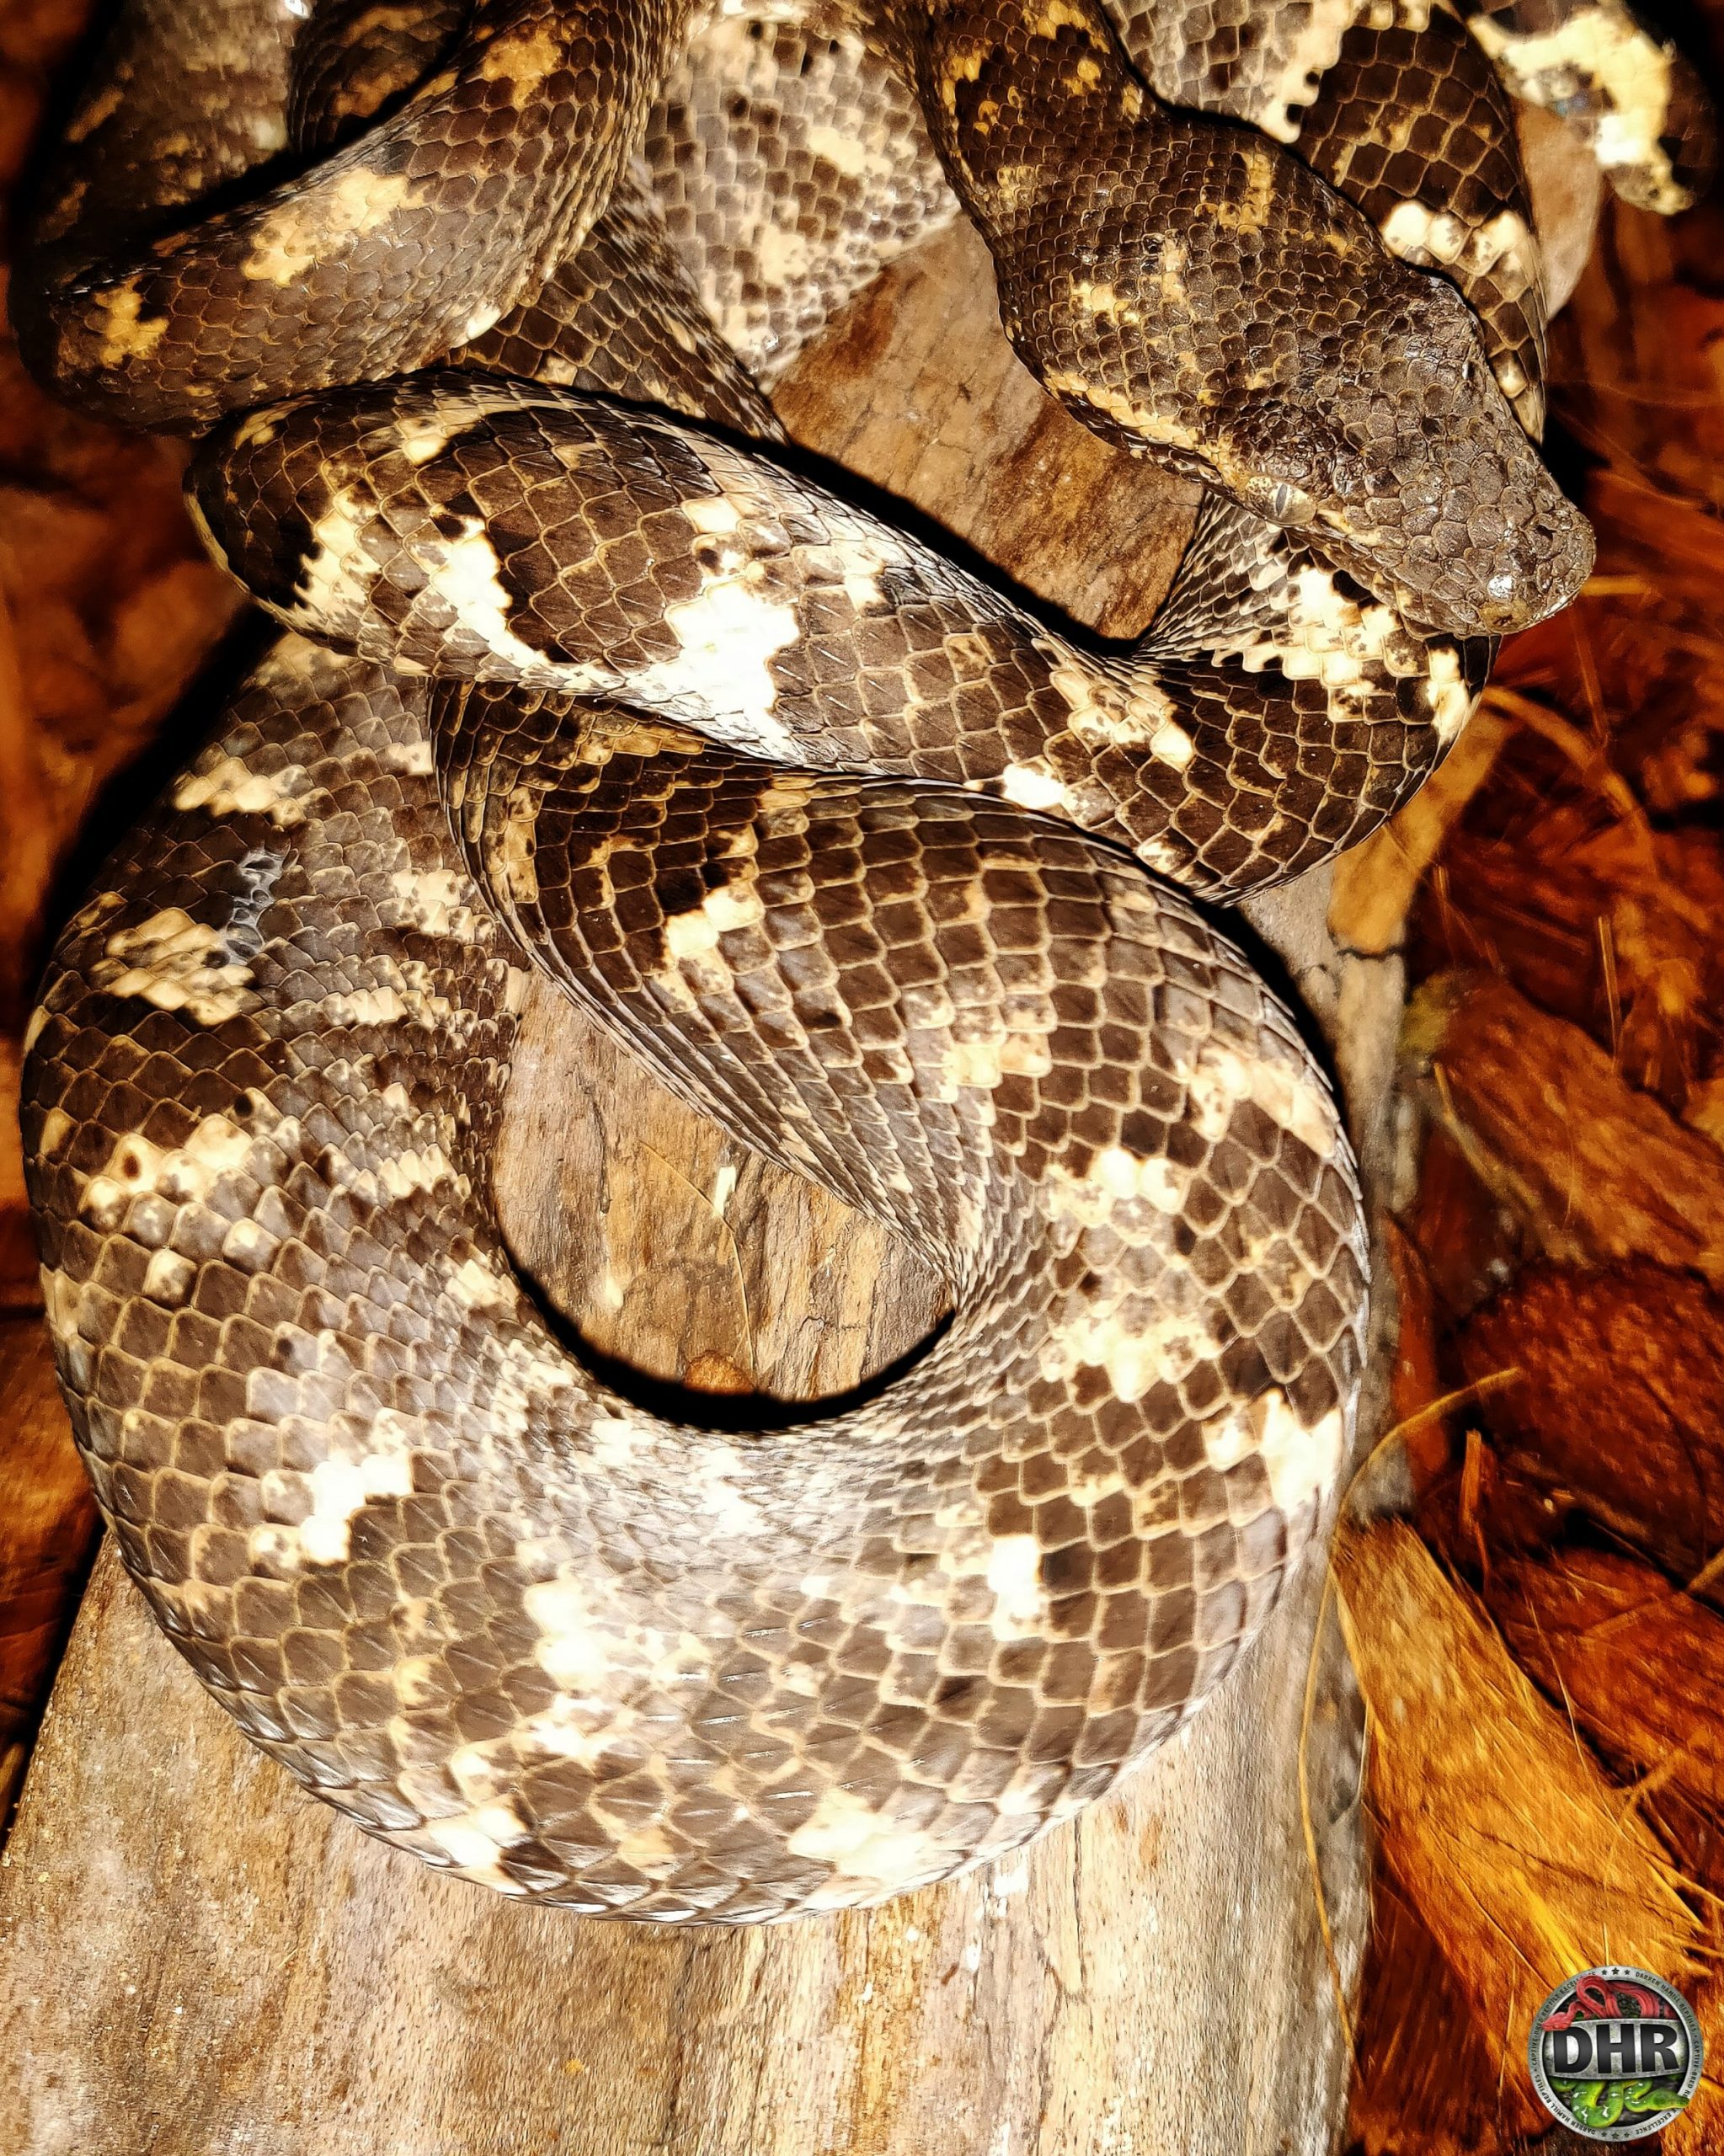 The variation in colour of these Solomon Island Tree Boas